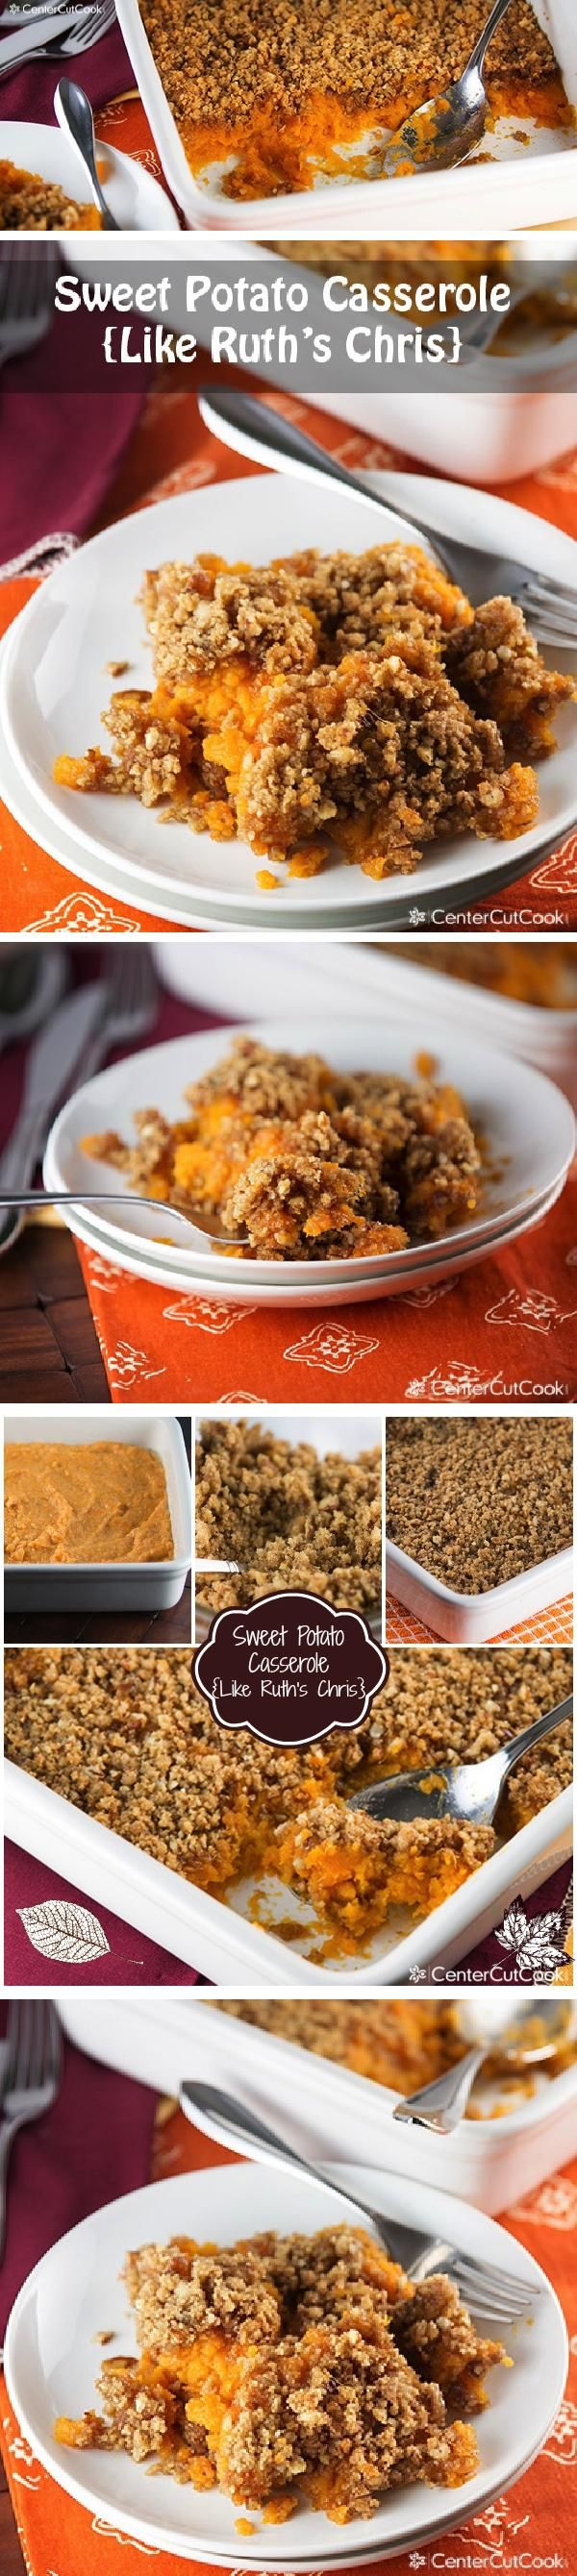 SWEET POTATO CASSEROLE like RUTH'S Chris with a pecan crust! Perfect for Thanksgiving and a delicious alternative to the version with marshmallows!